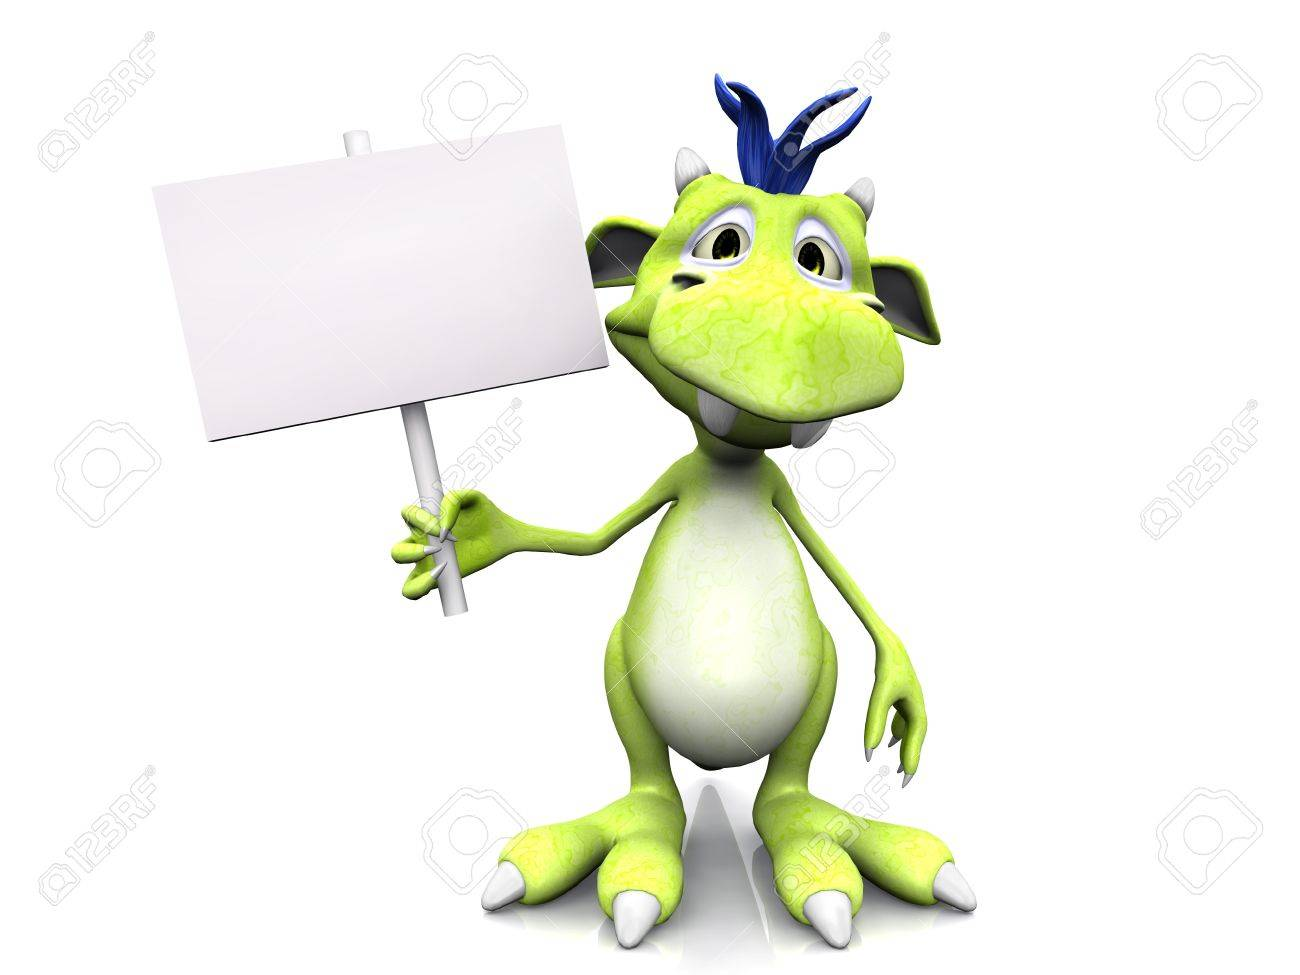 A cute friendly cartoon monster holding a blank sign in his hand. The monster is green with blue hair. White background. Stock Photo - 8682194